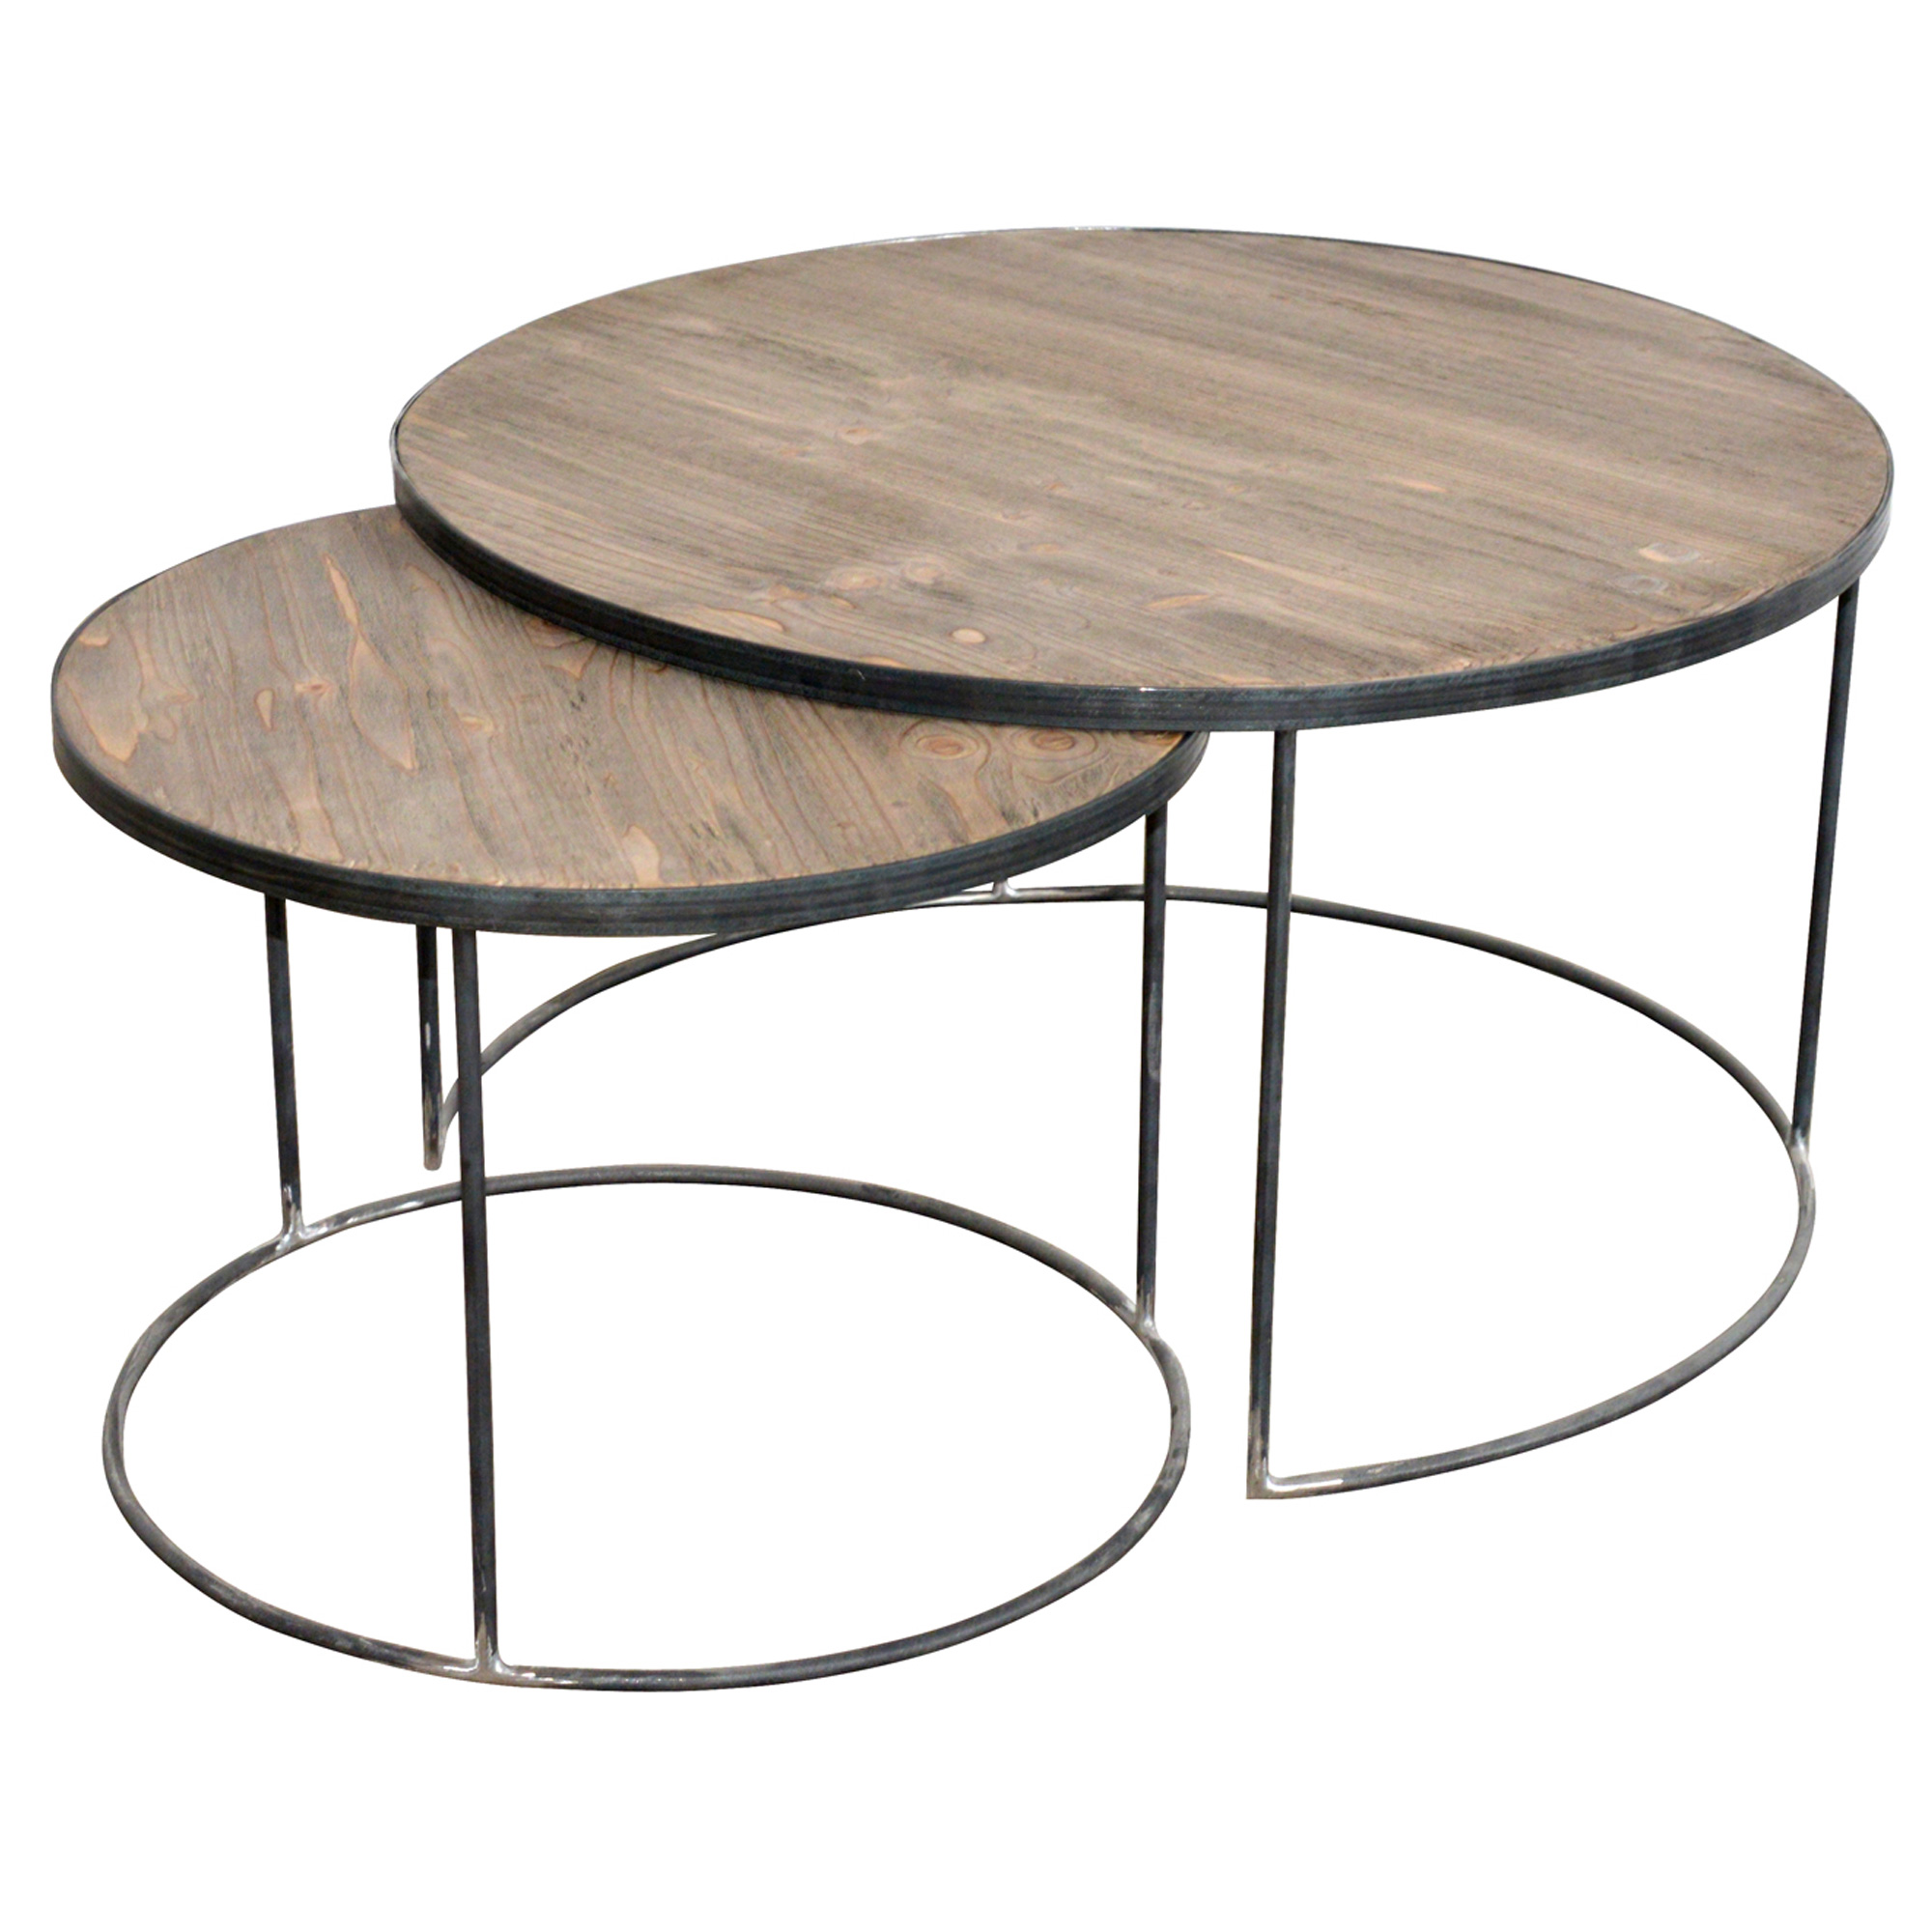 modern tables table square living melrose shop metal coffee marble styled black set sets designer room base furniture